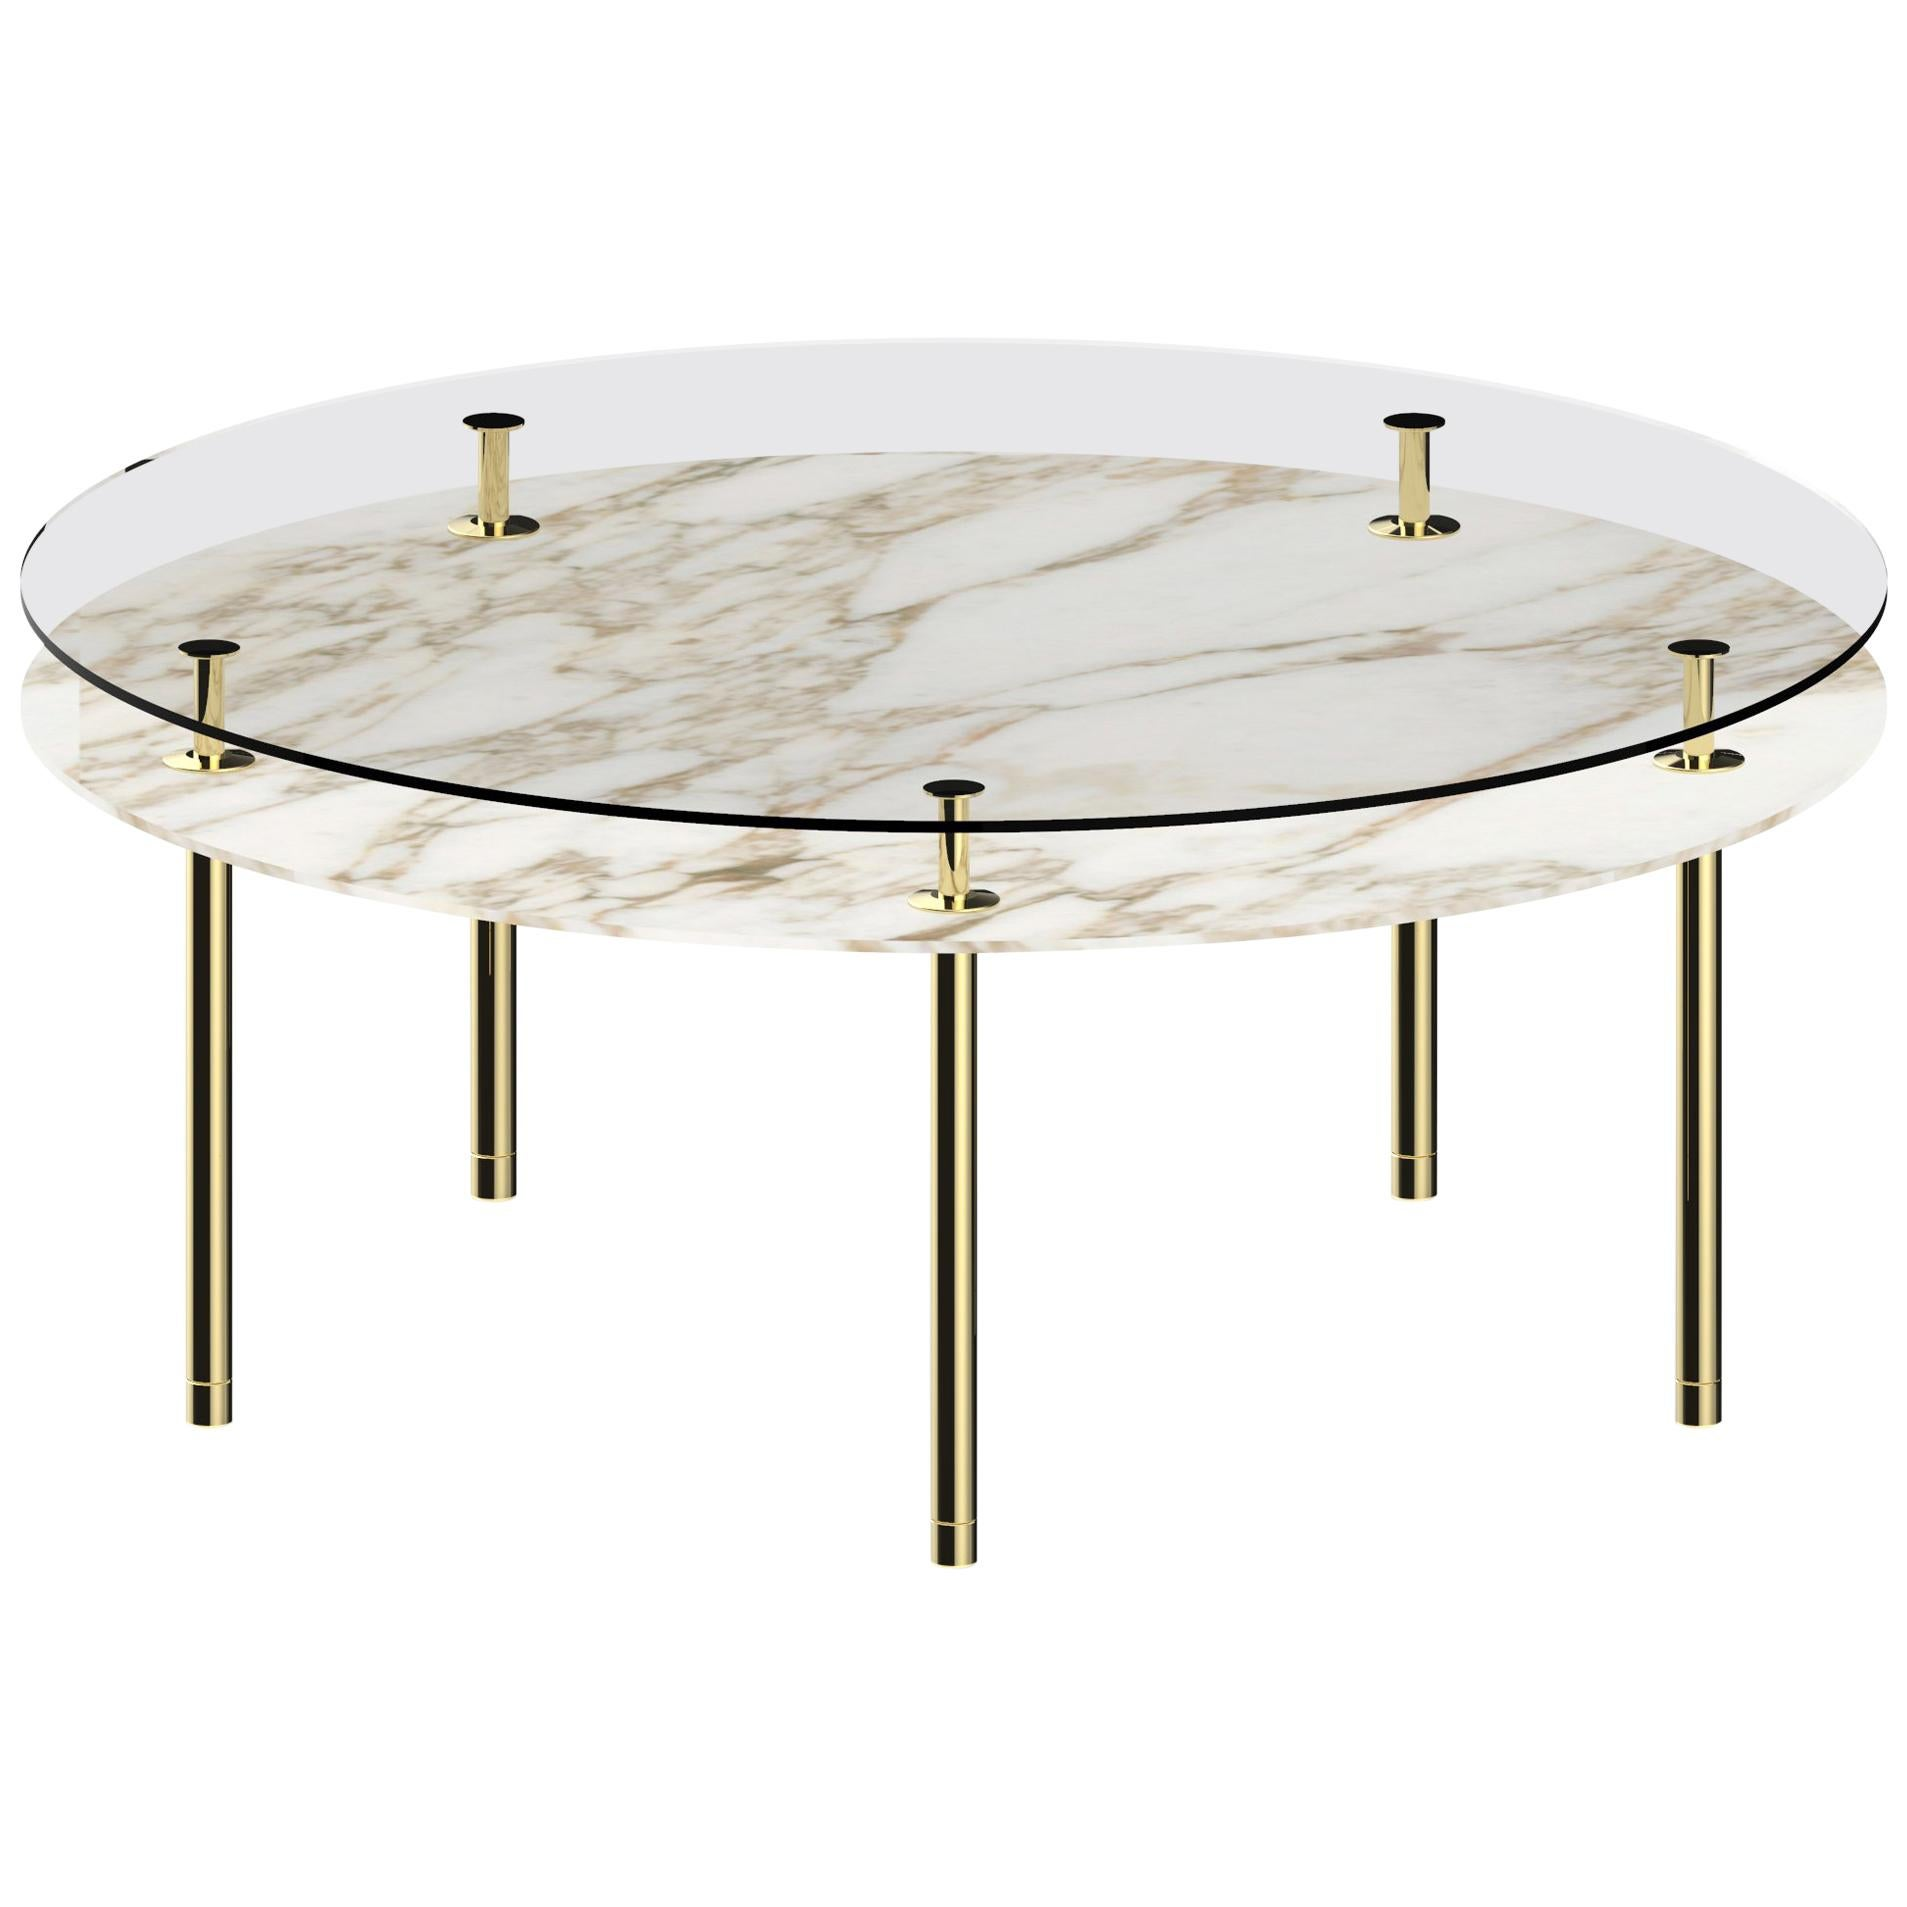 Ghidini 1961 Large Legs Round Table in Calacatta Gold by Paolo Rizzatto